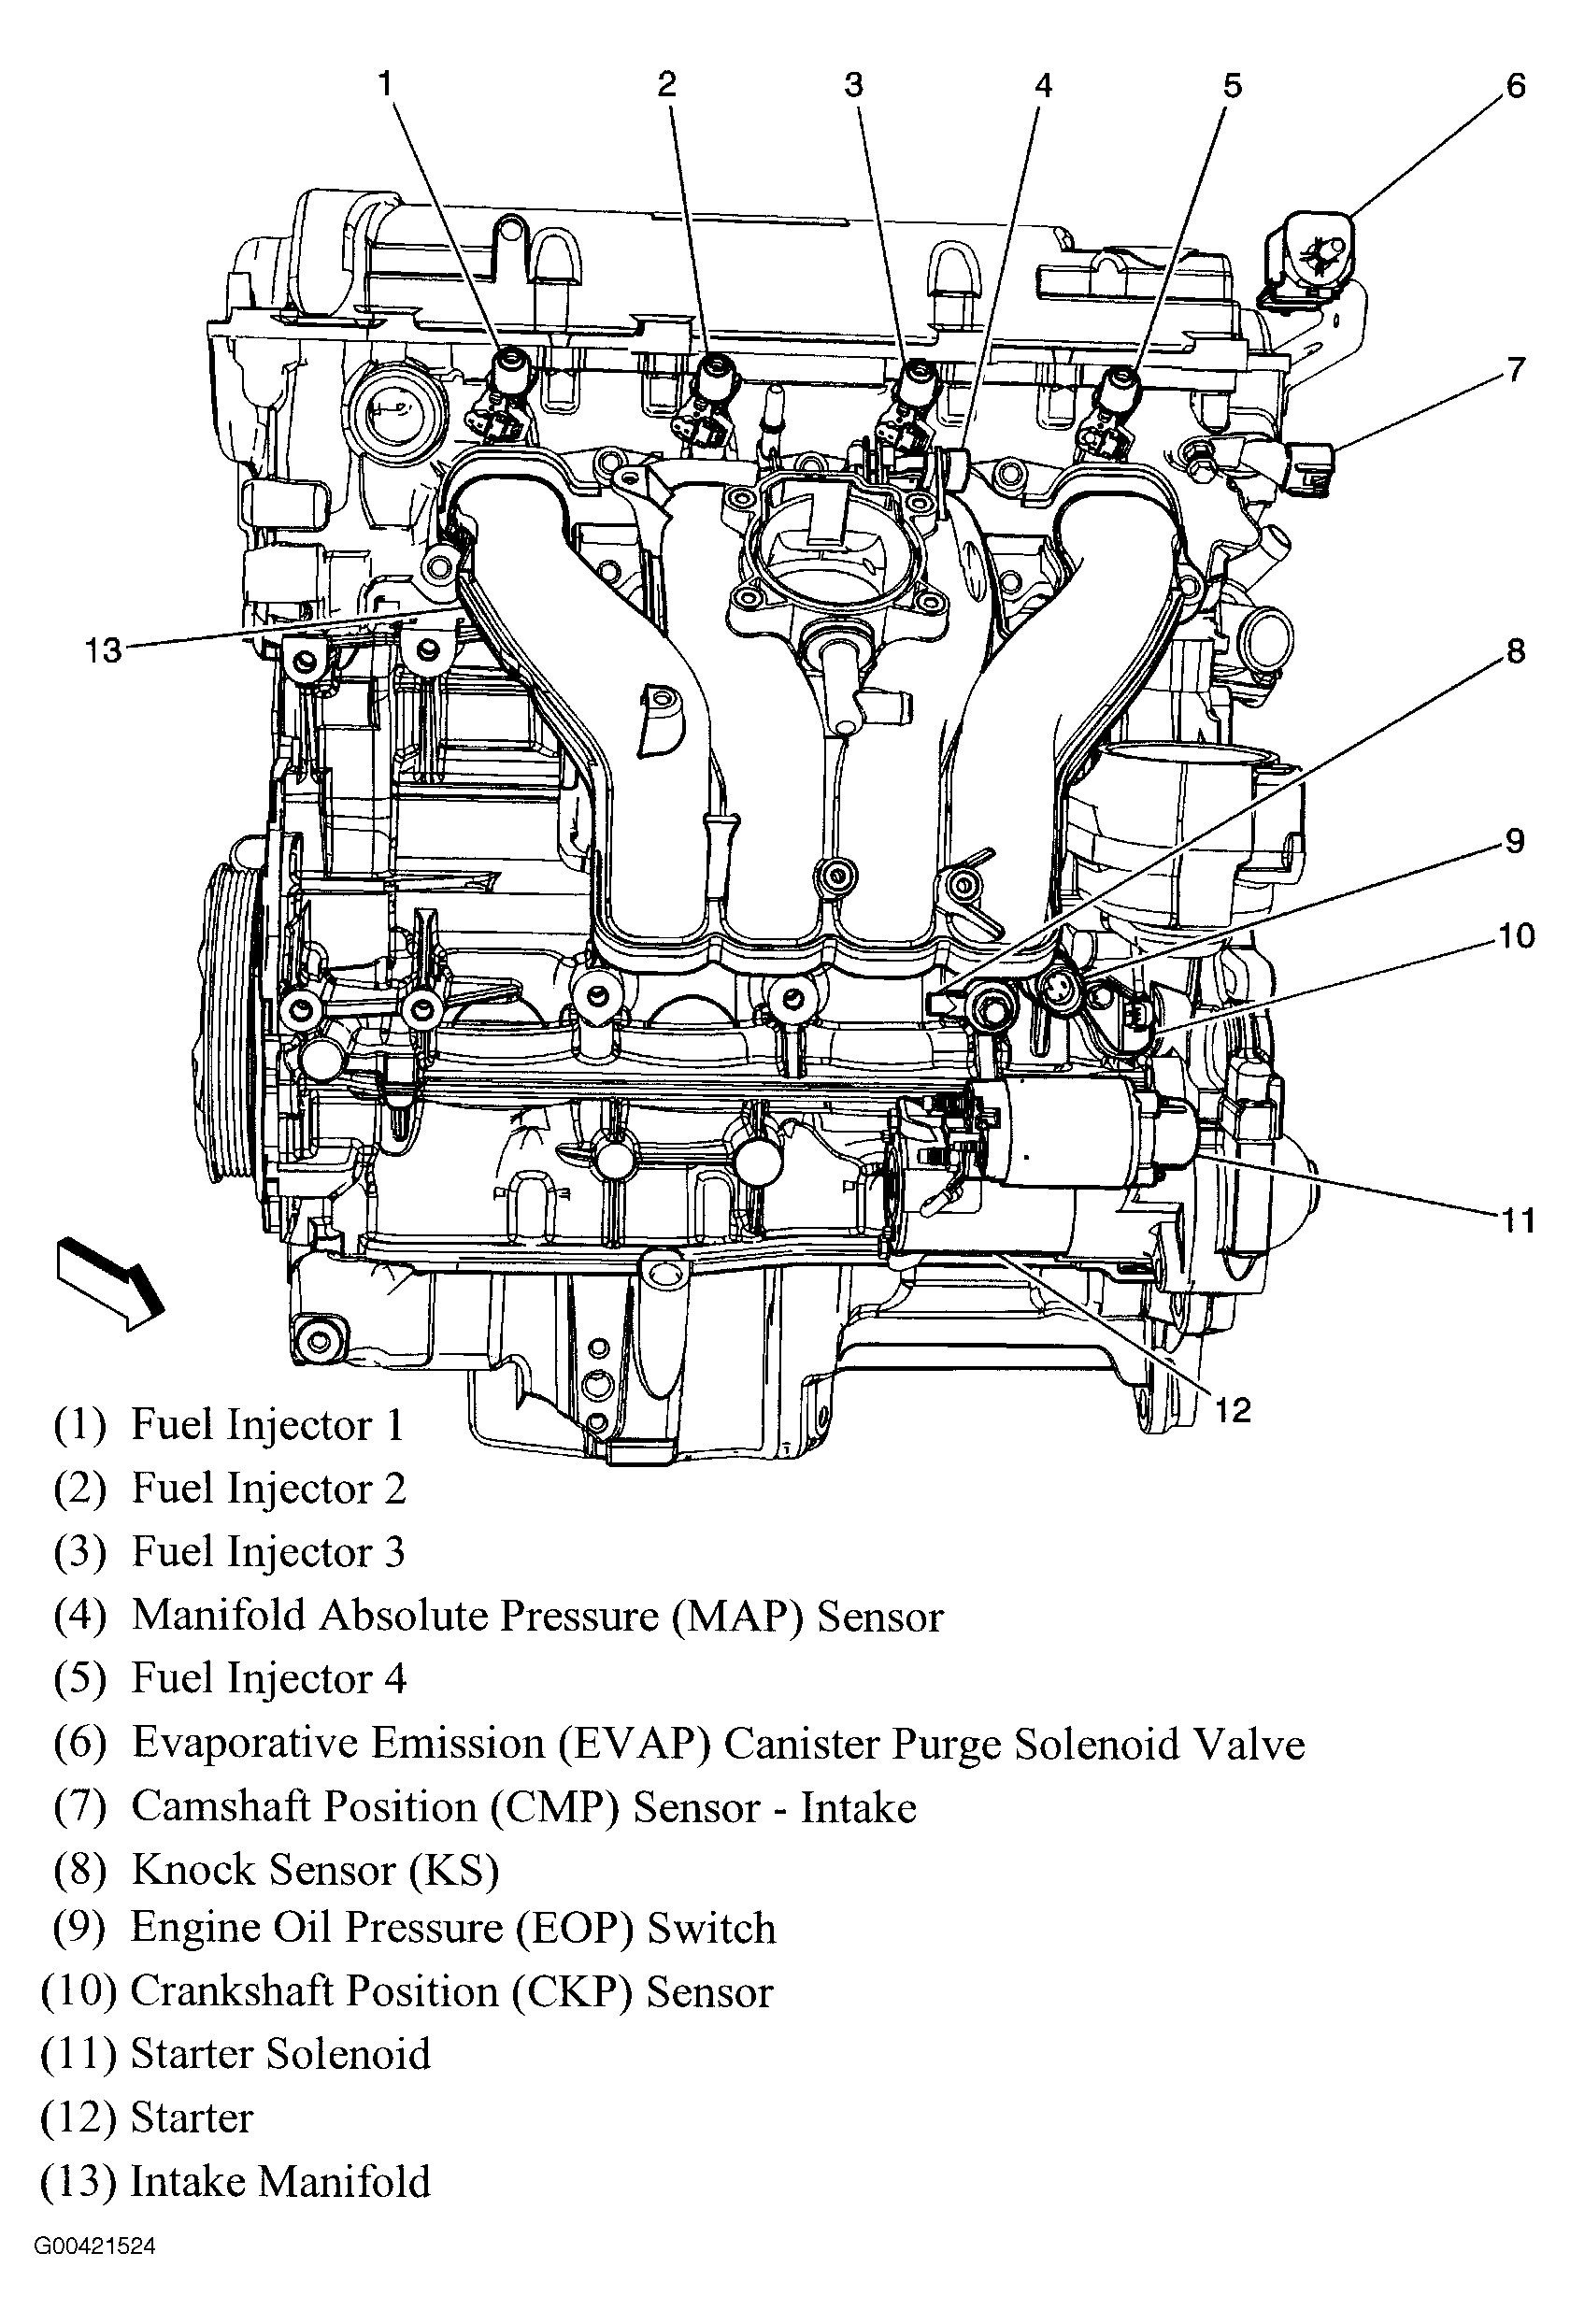 Cavalier Engine Diagram Wiring Diagrams 2000 2004 Chevy Tracker Library Rh 94 Bloxhuette De 2001 22